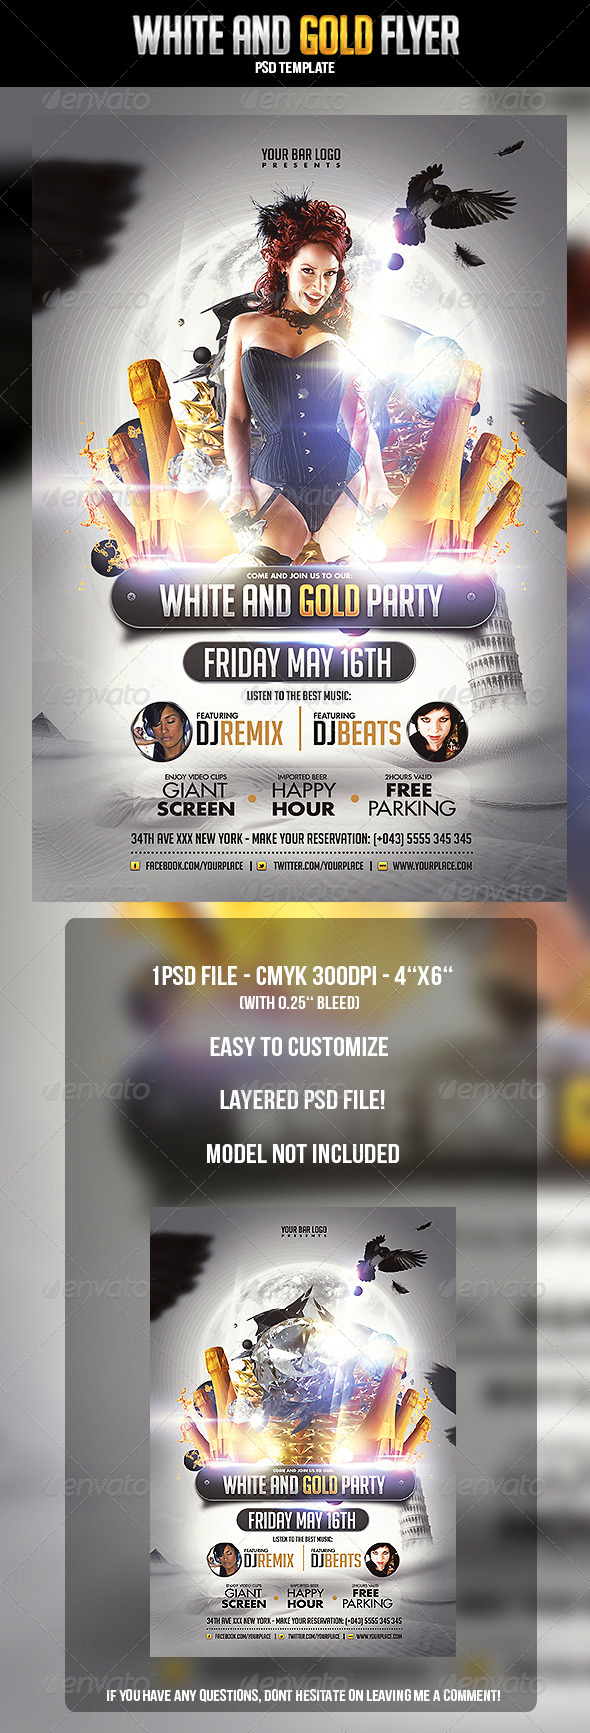 White and Gold Flyer Template - Clubs & Parties Events